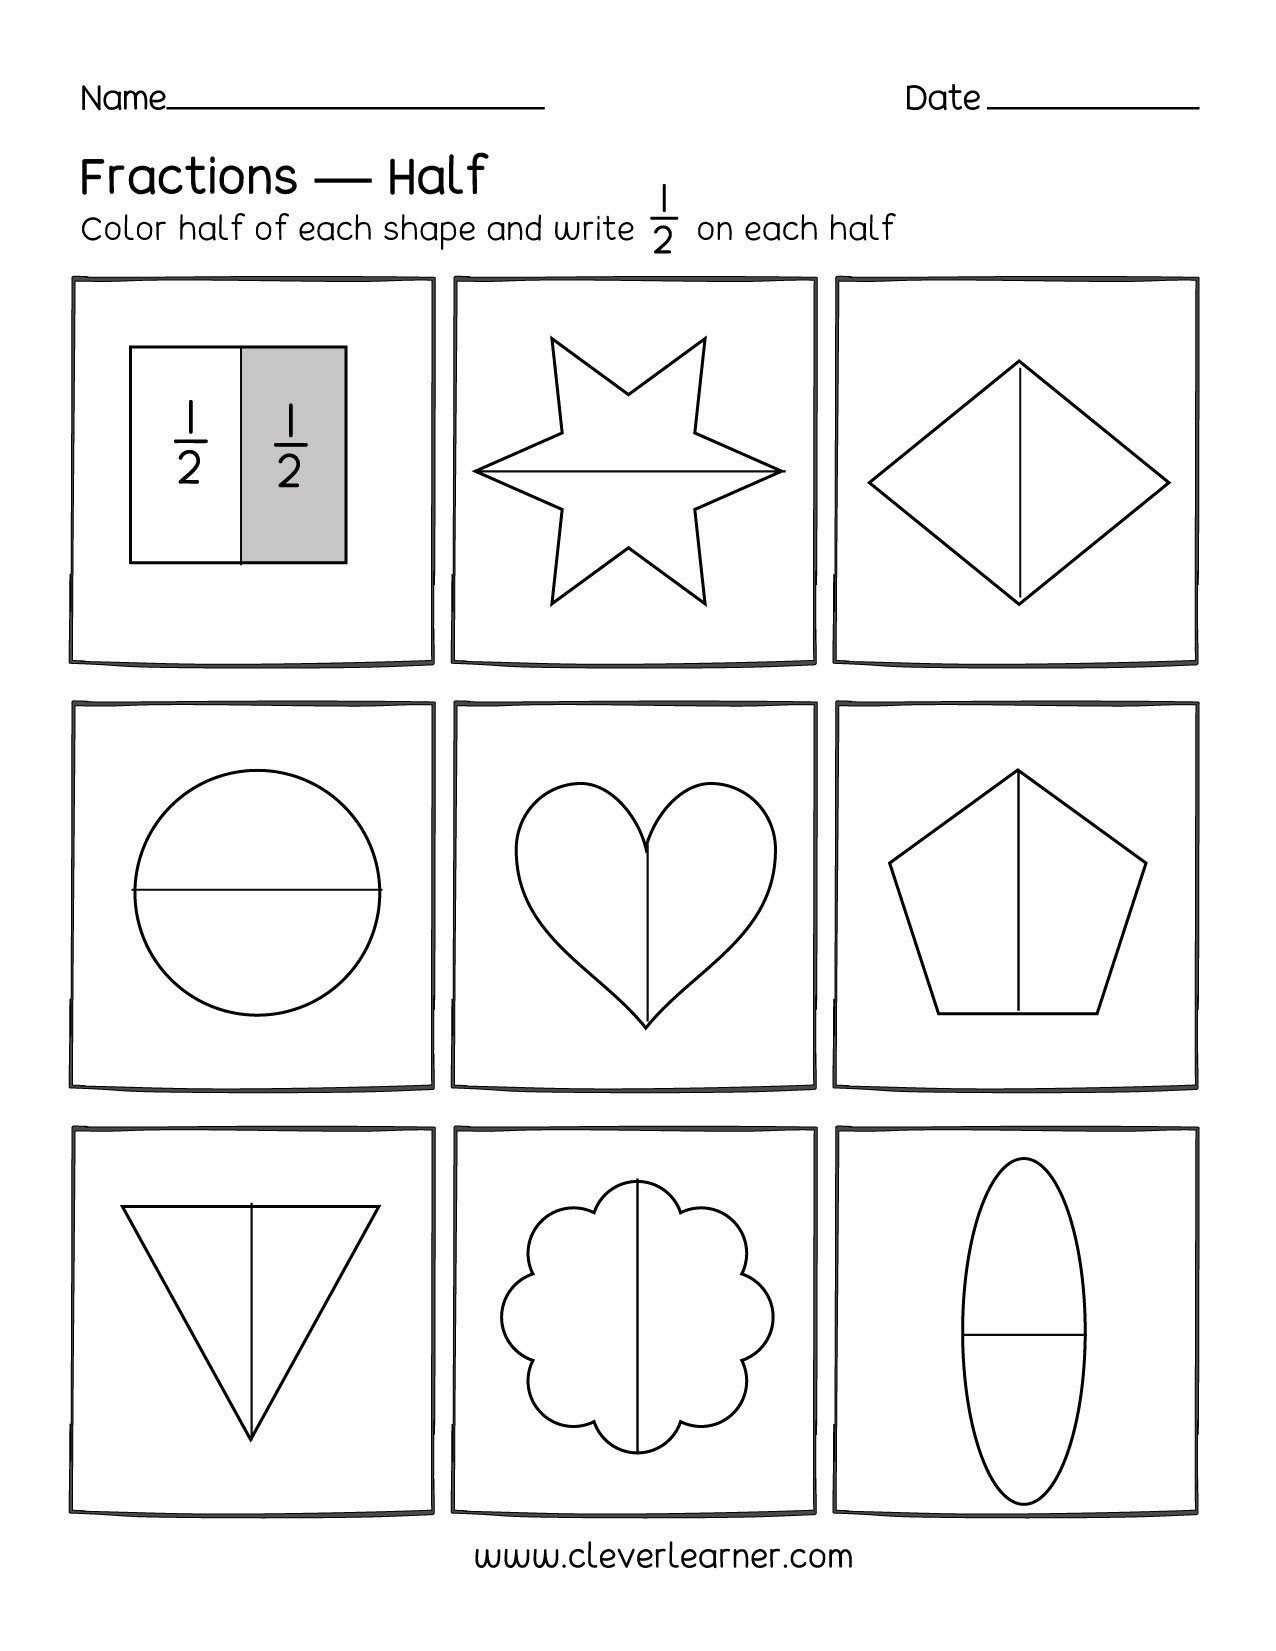 Halves Thirds Fourths Worksheets Identifying Fractions Worksheet 1 Of 6